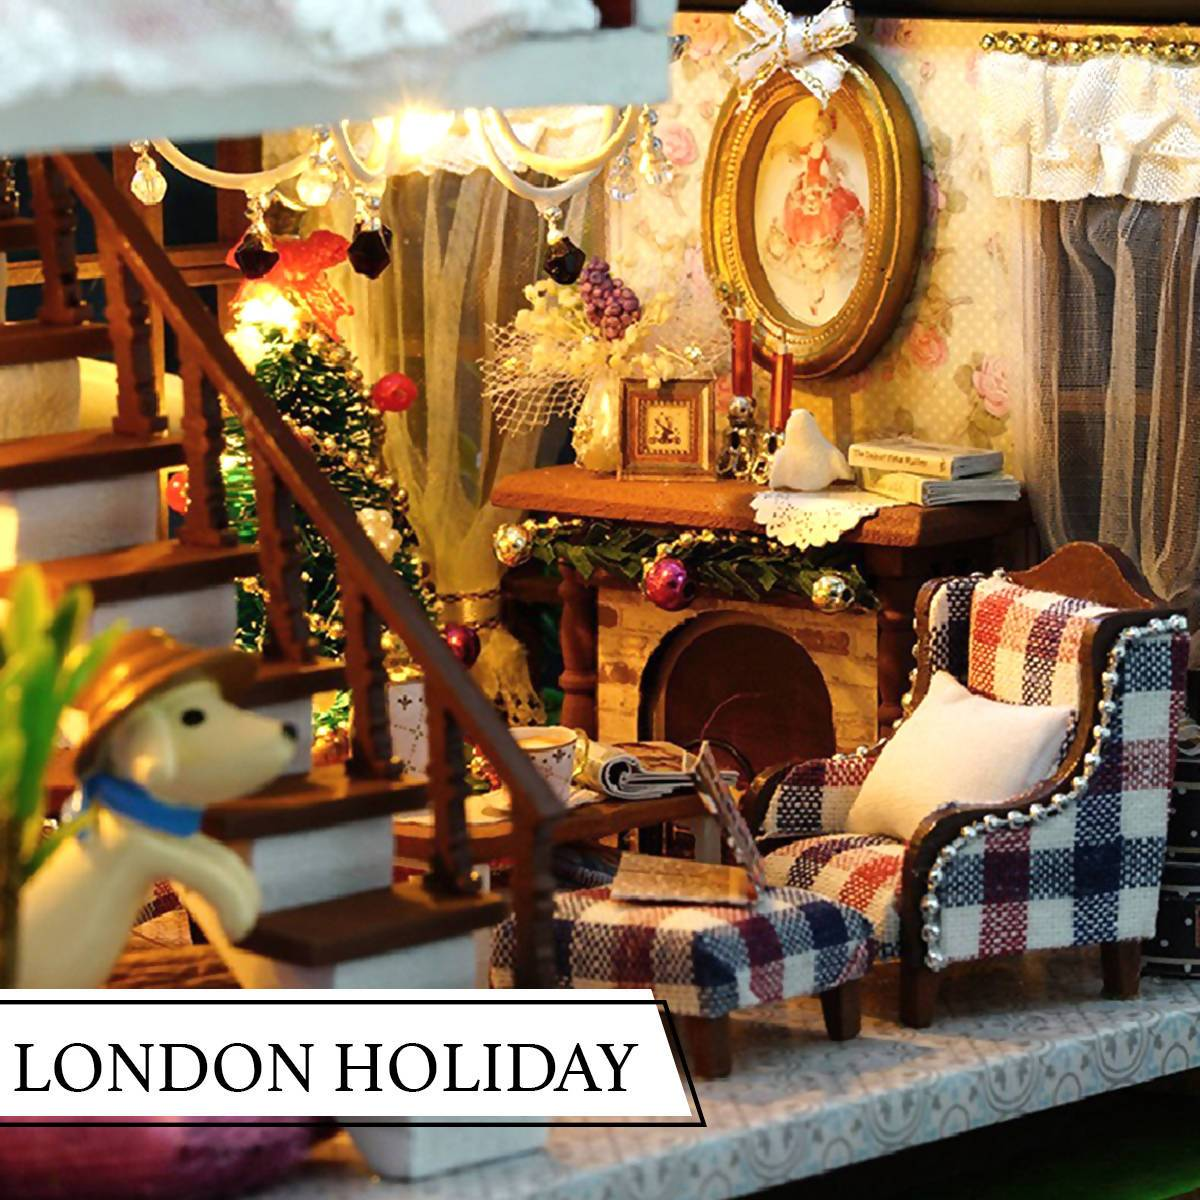 London Holiday Doll House - DIY Crafts - Blue Stone Craft - Naiise